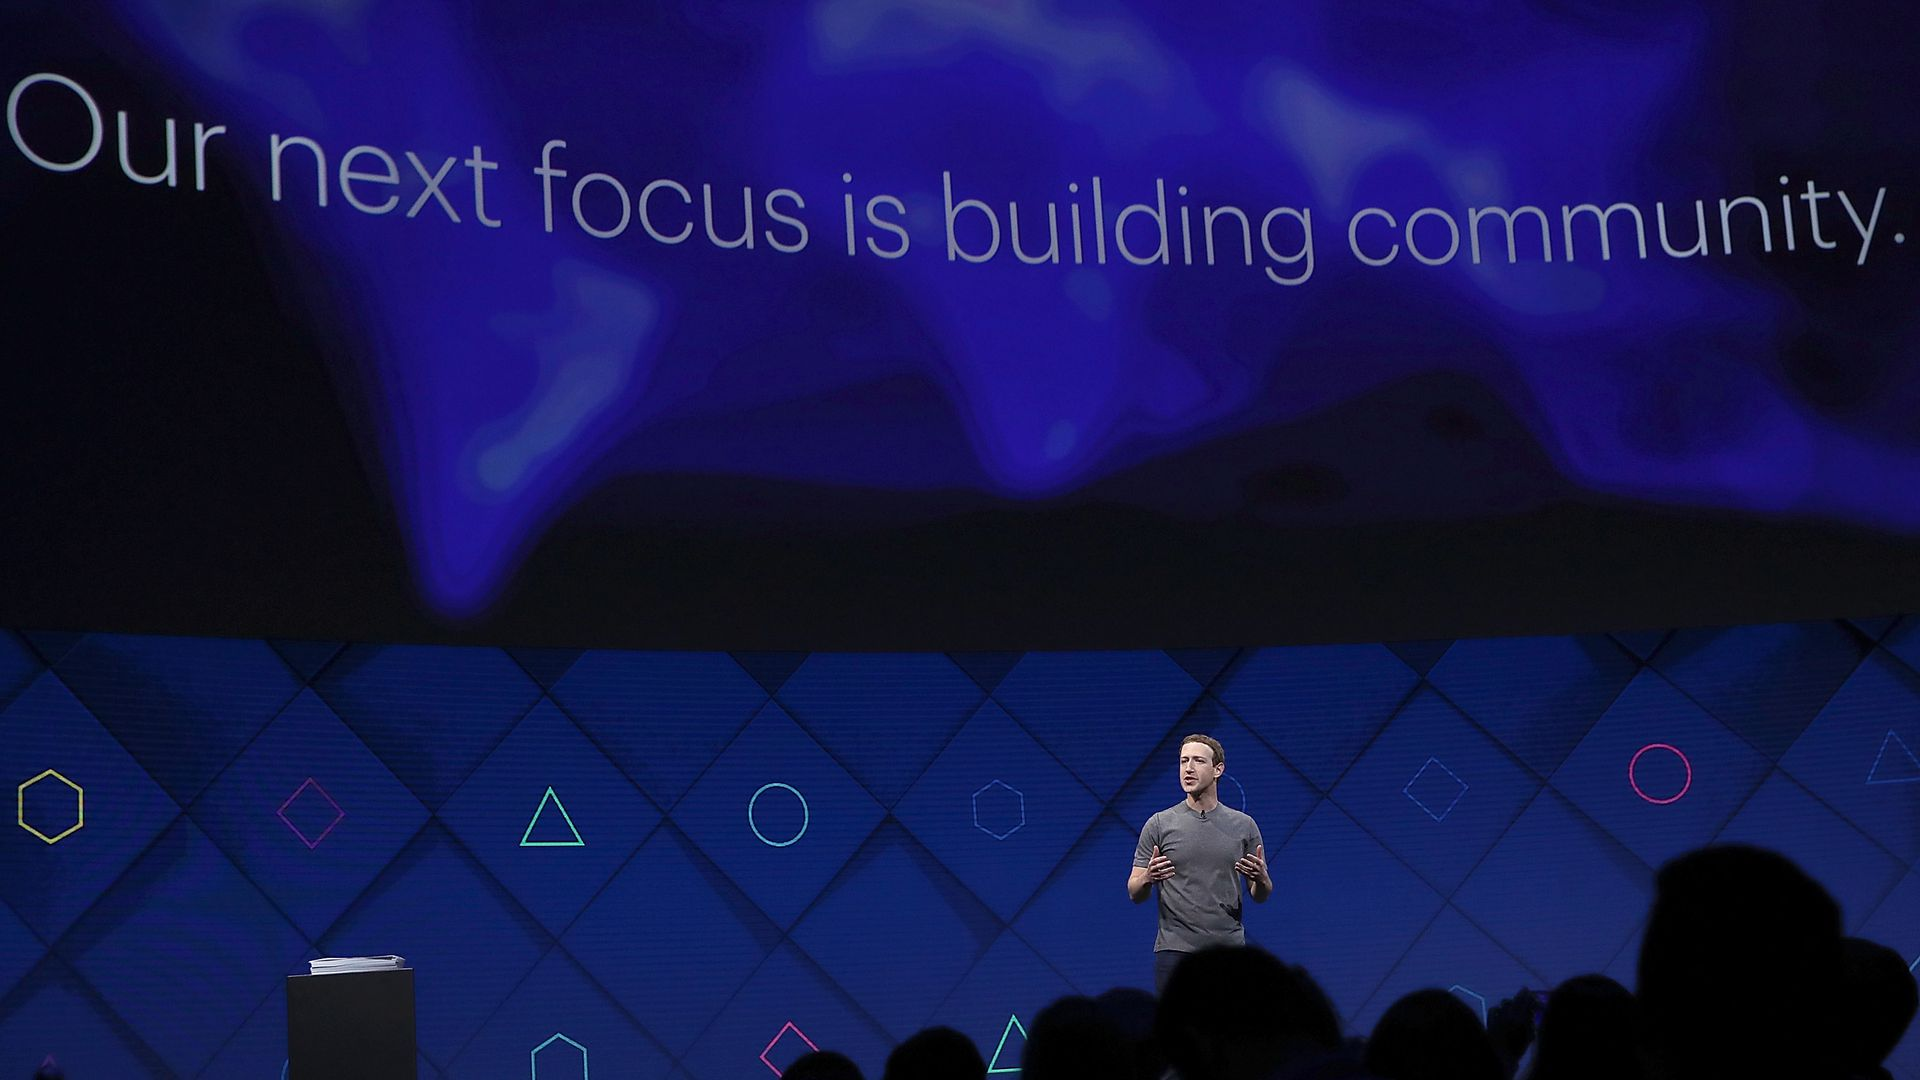 Mark Zuckerberg onstage at Facebook